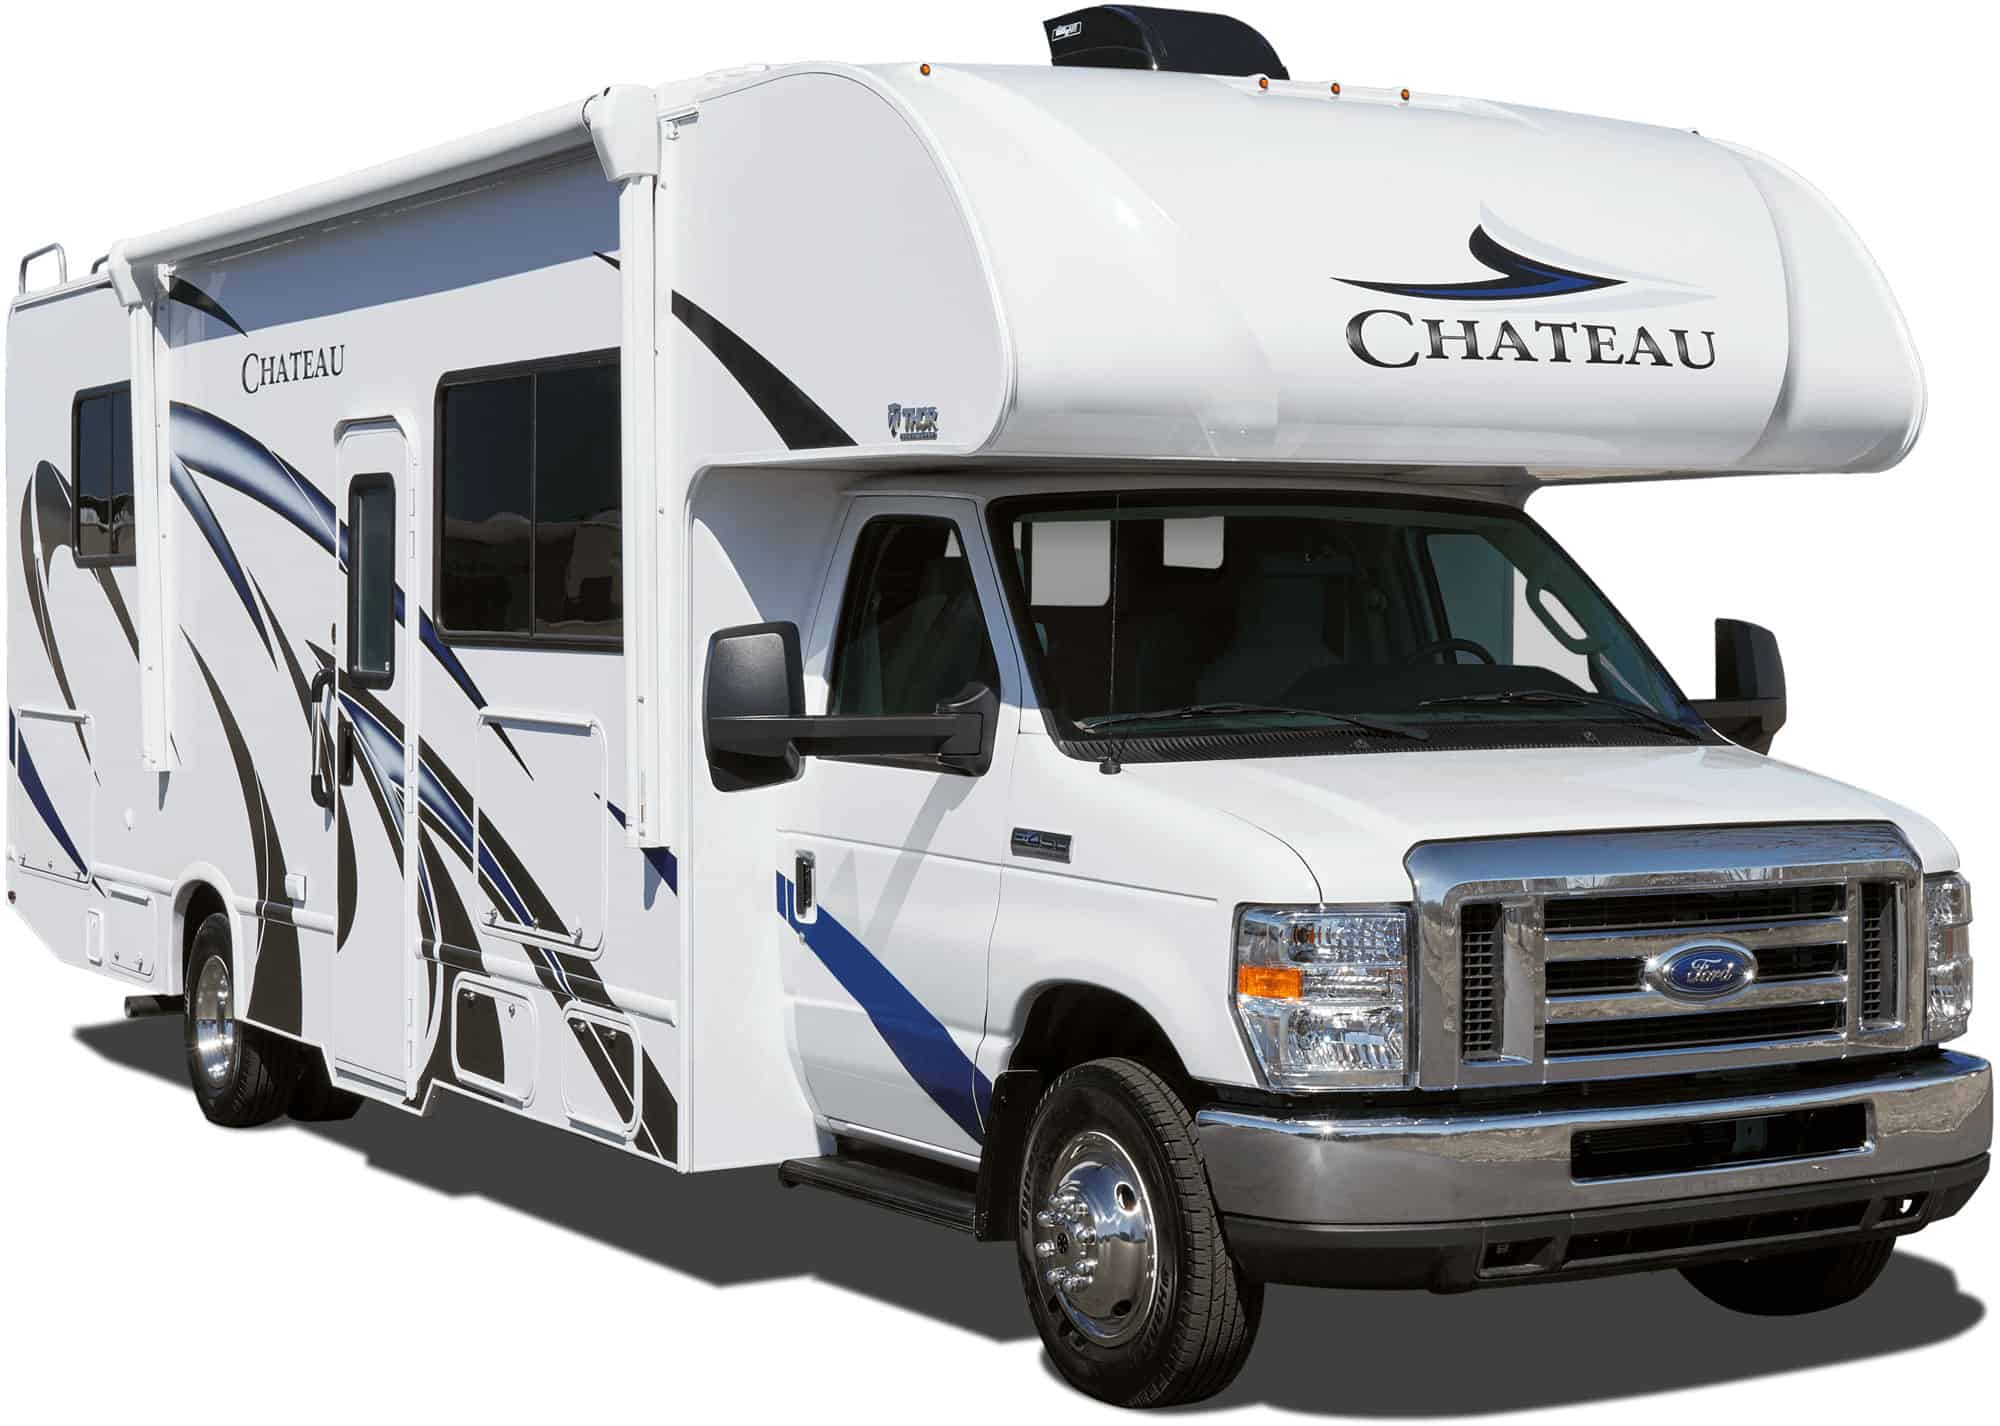 Chateau small RV by Thor Motor Coach